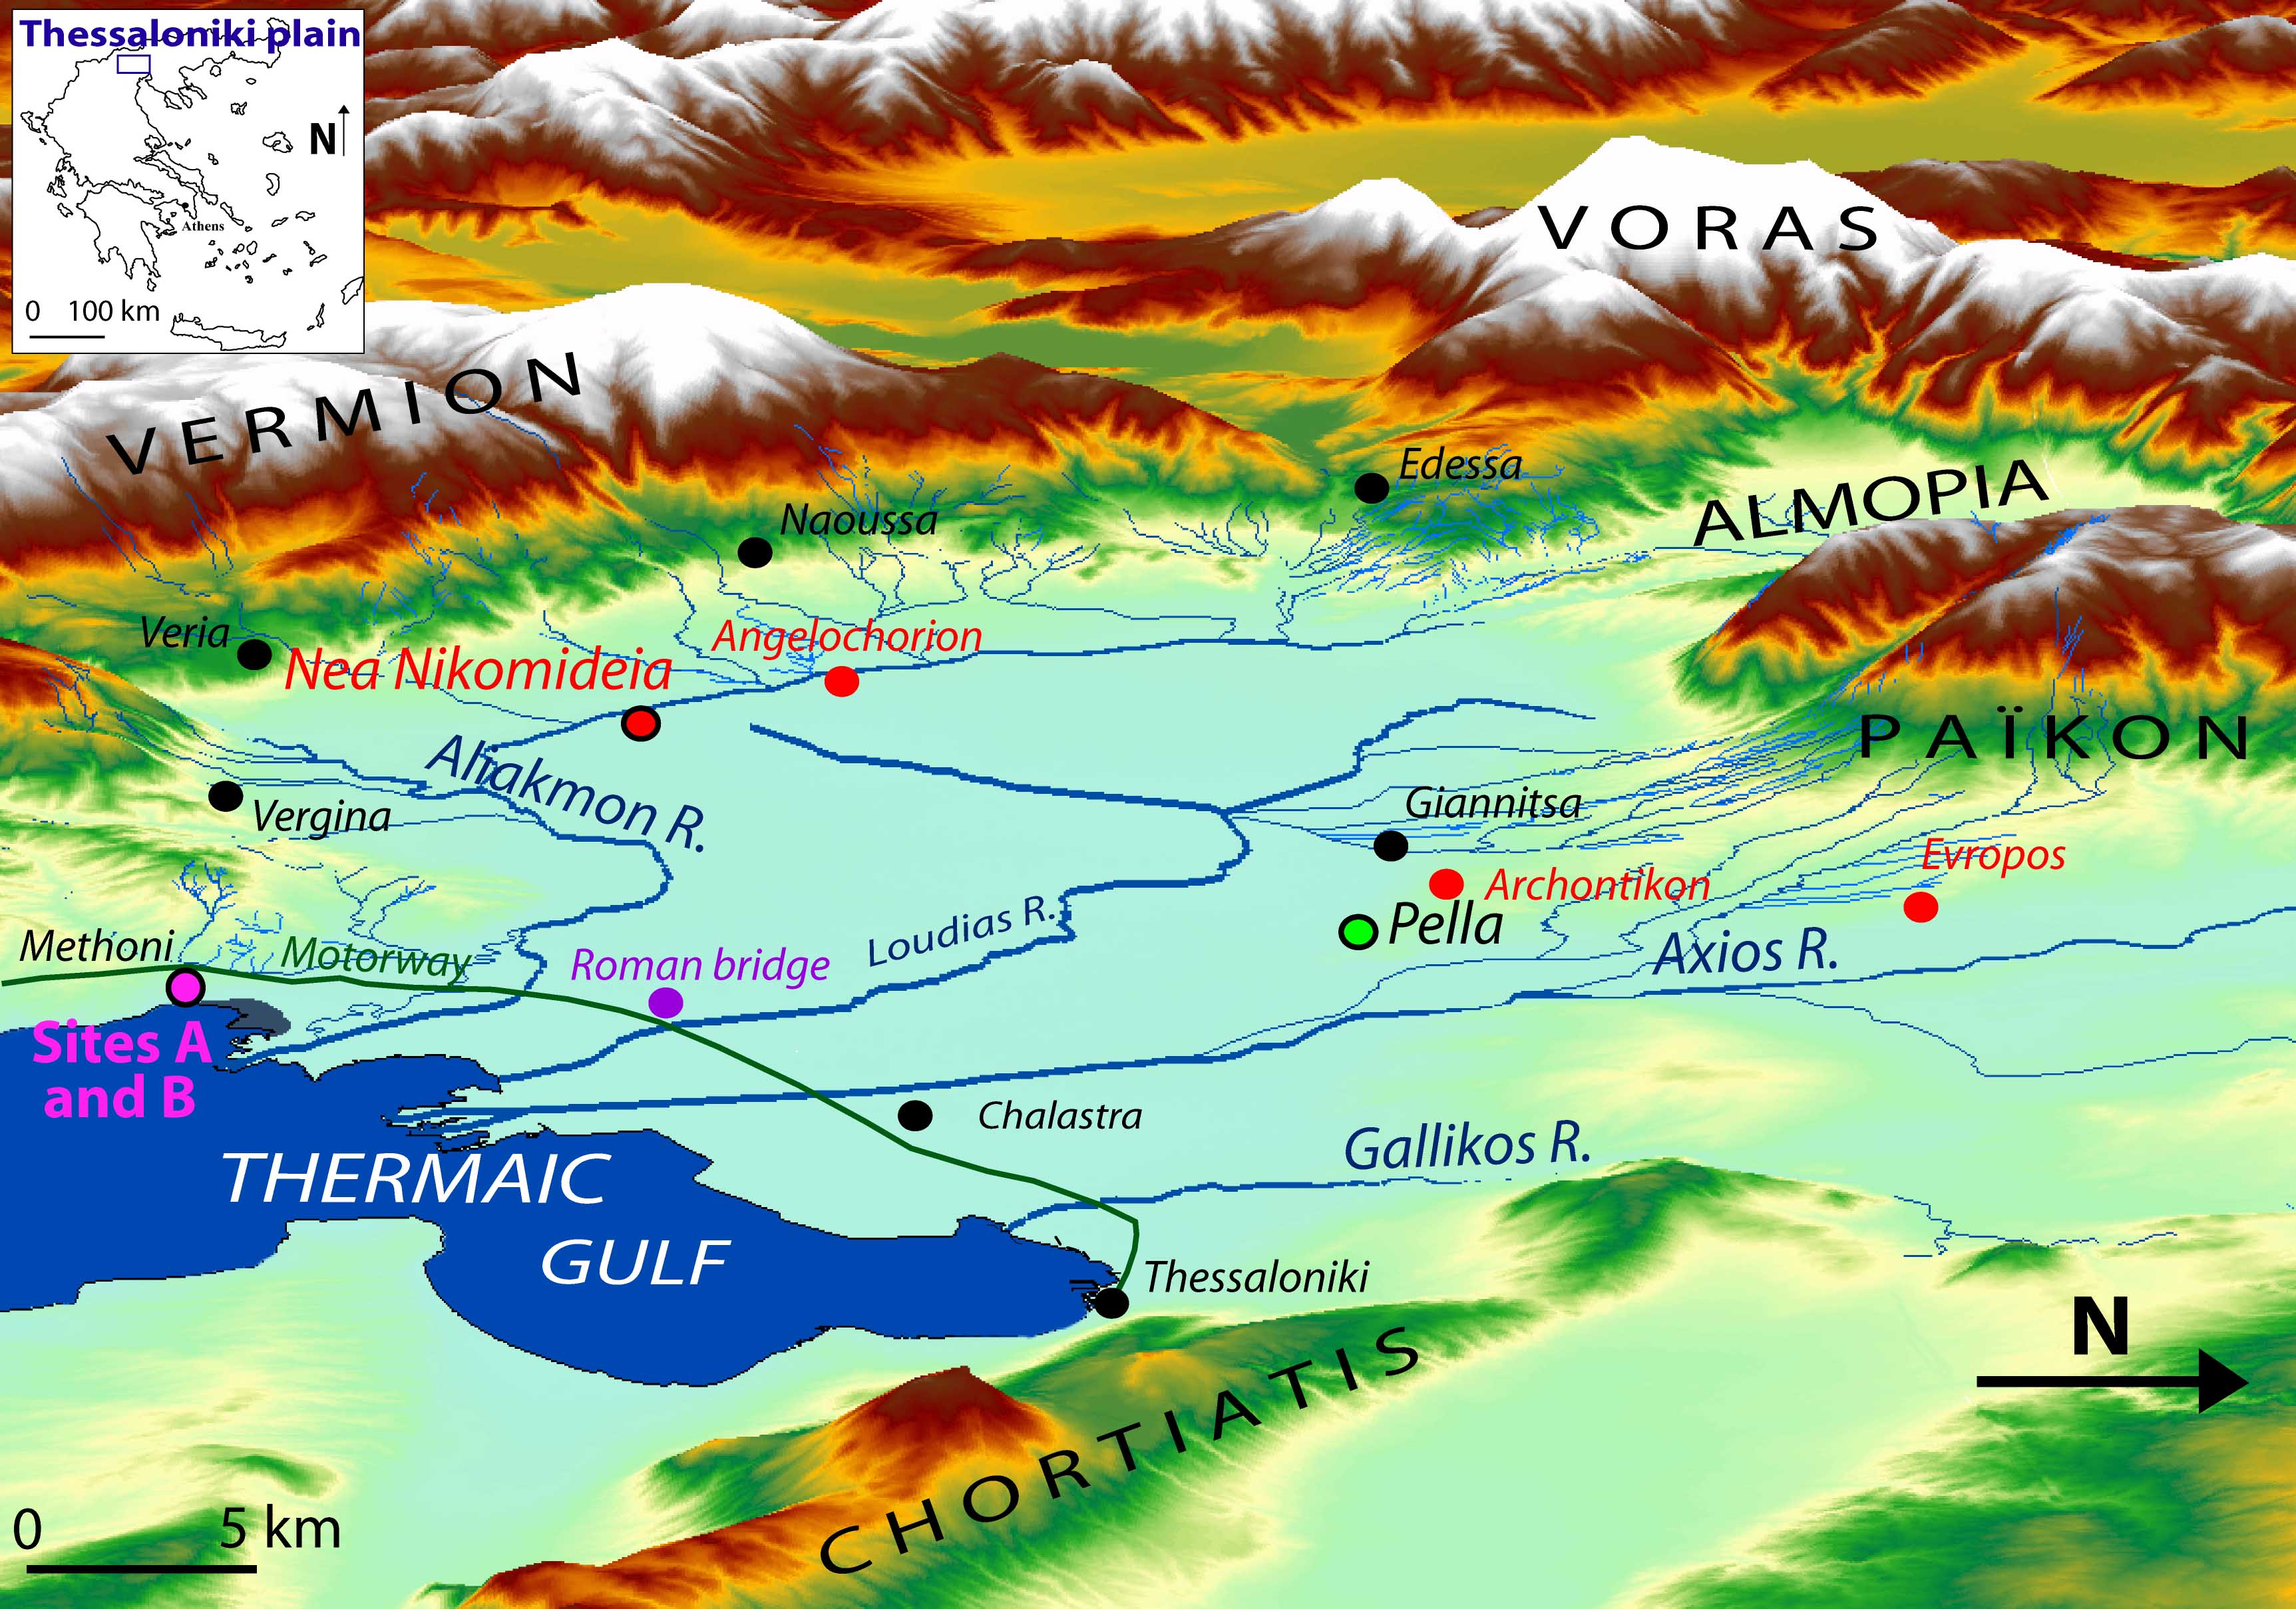 Topographic Map Of Ancient Greece.Geoarchaeology Where Human Social And Earth Sciences Meet With